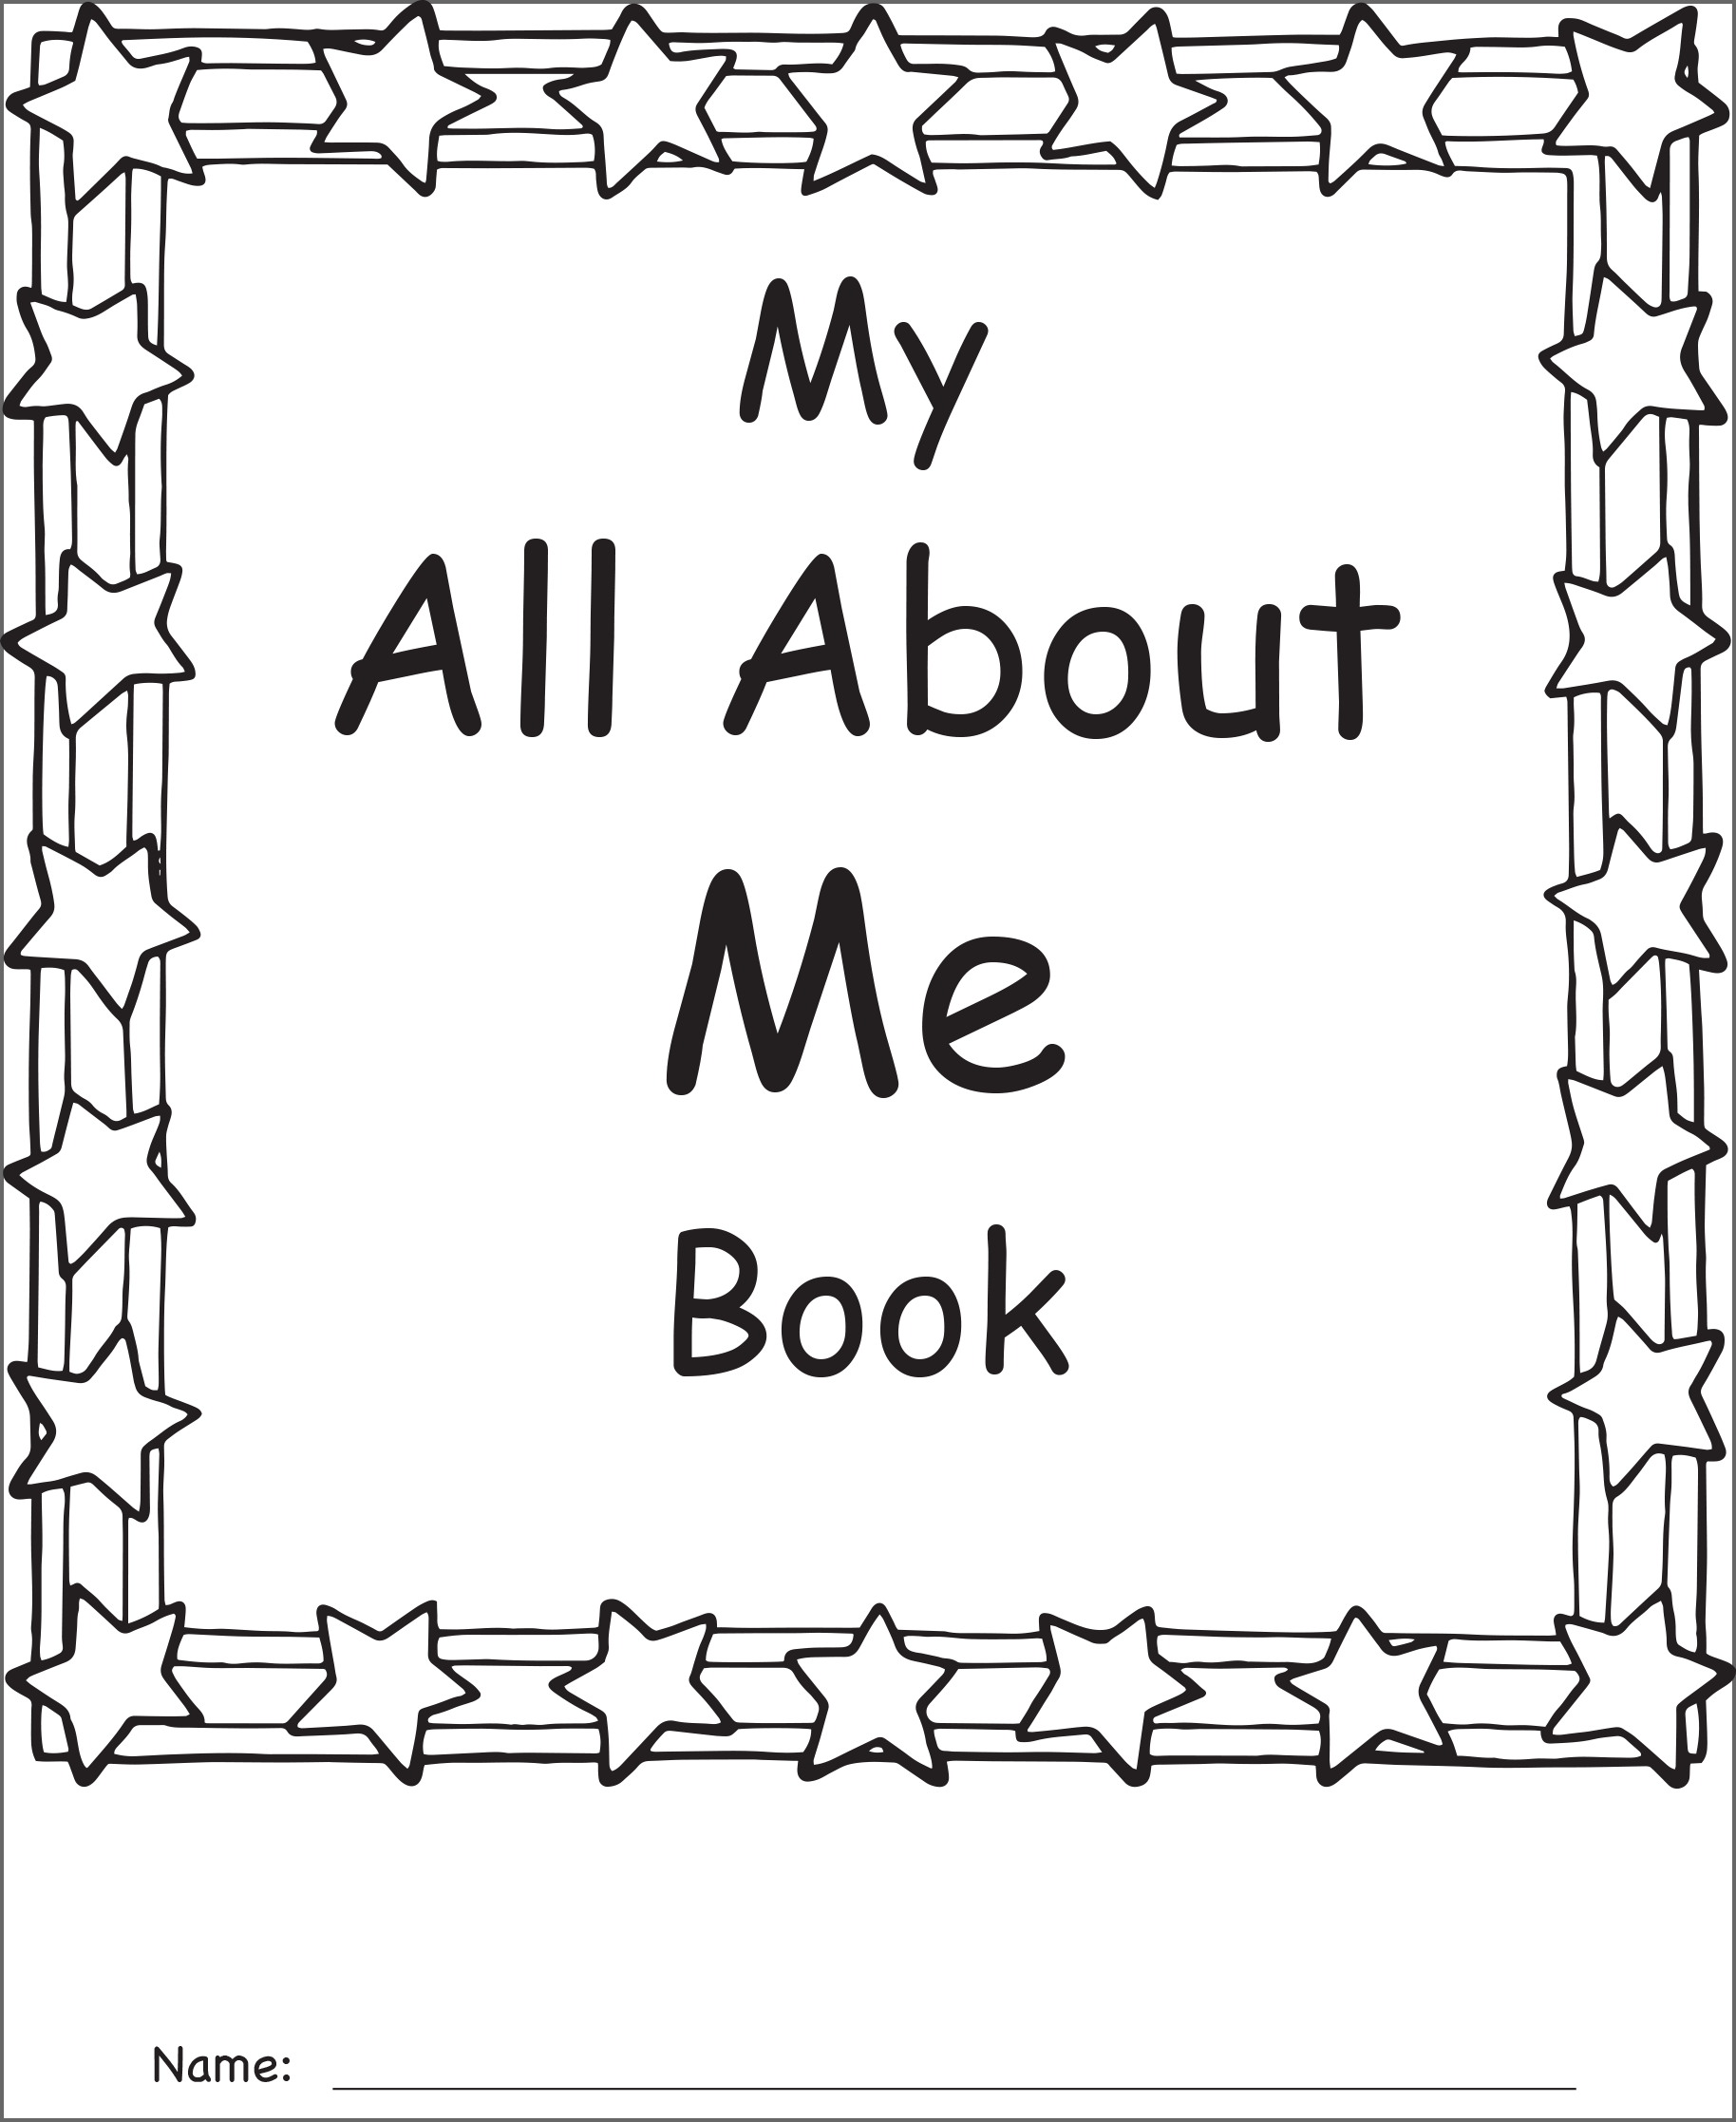 Simplicity image for all about me printable book